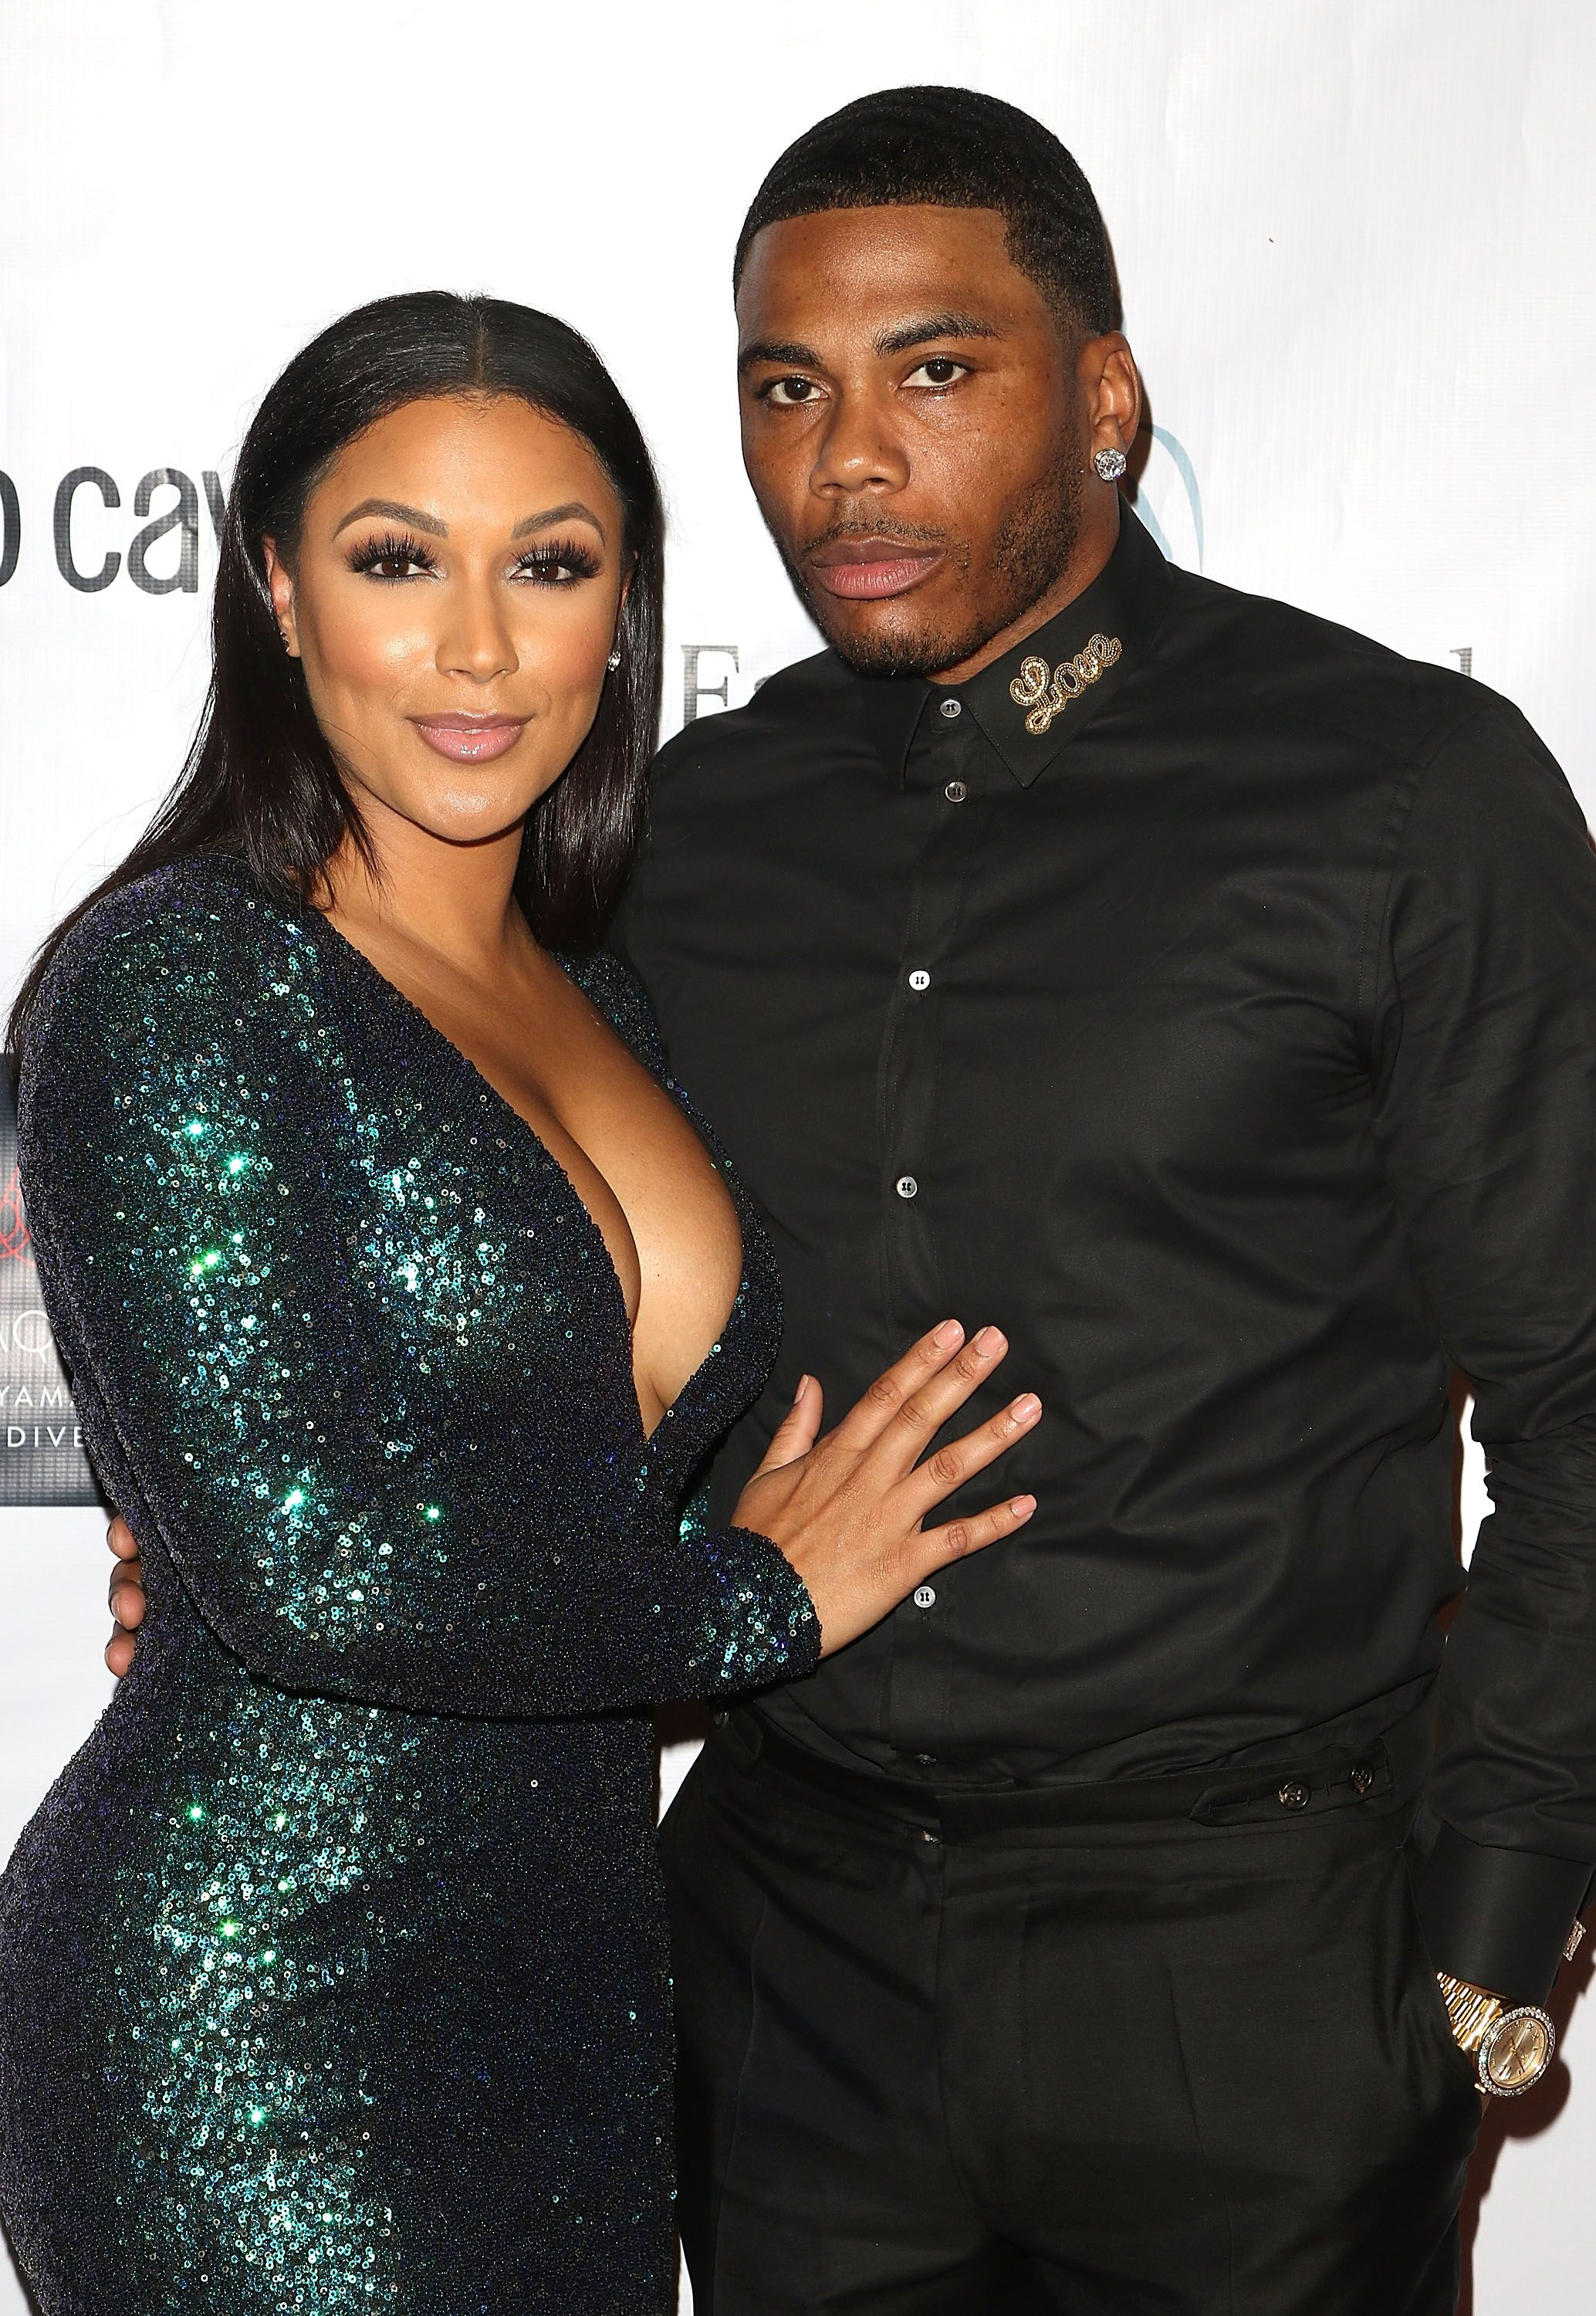 Nelly and Shantel Jackson at The 7th Annual Face Forward Gala at Vibiana on September 24, 2016 in Los Angeles, California | Photo: Getty Images